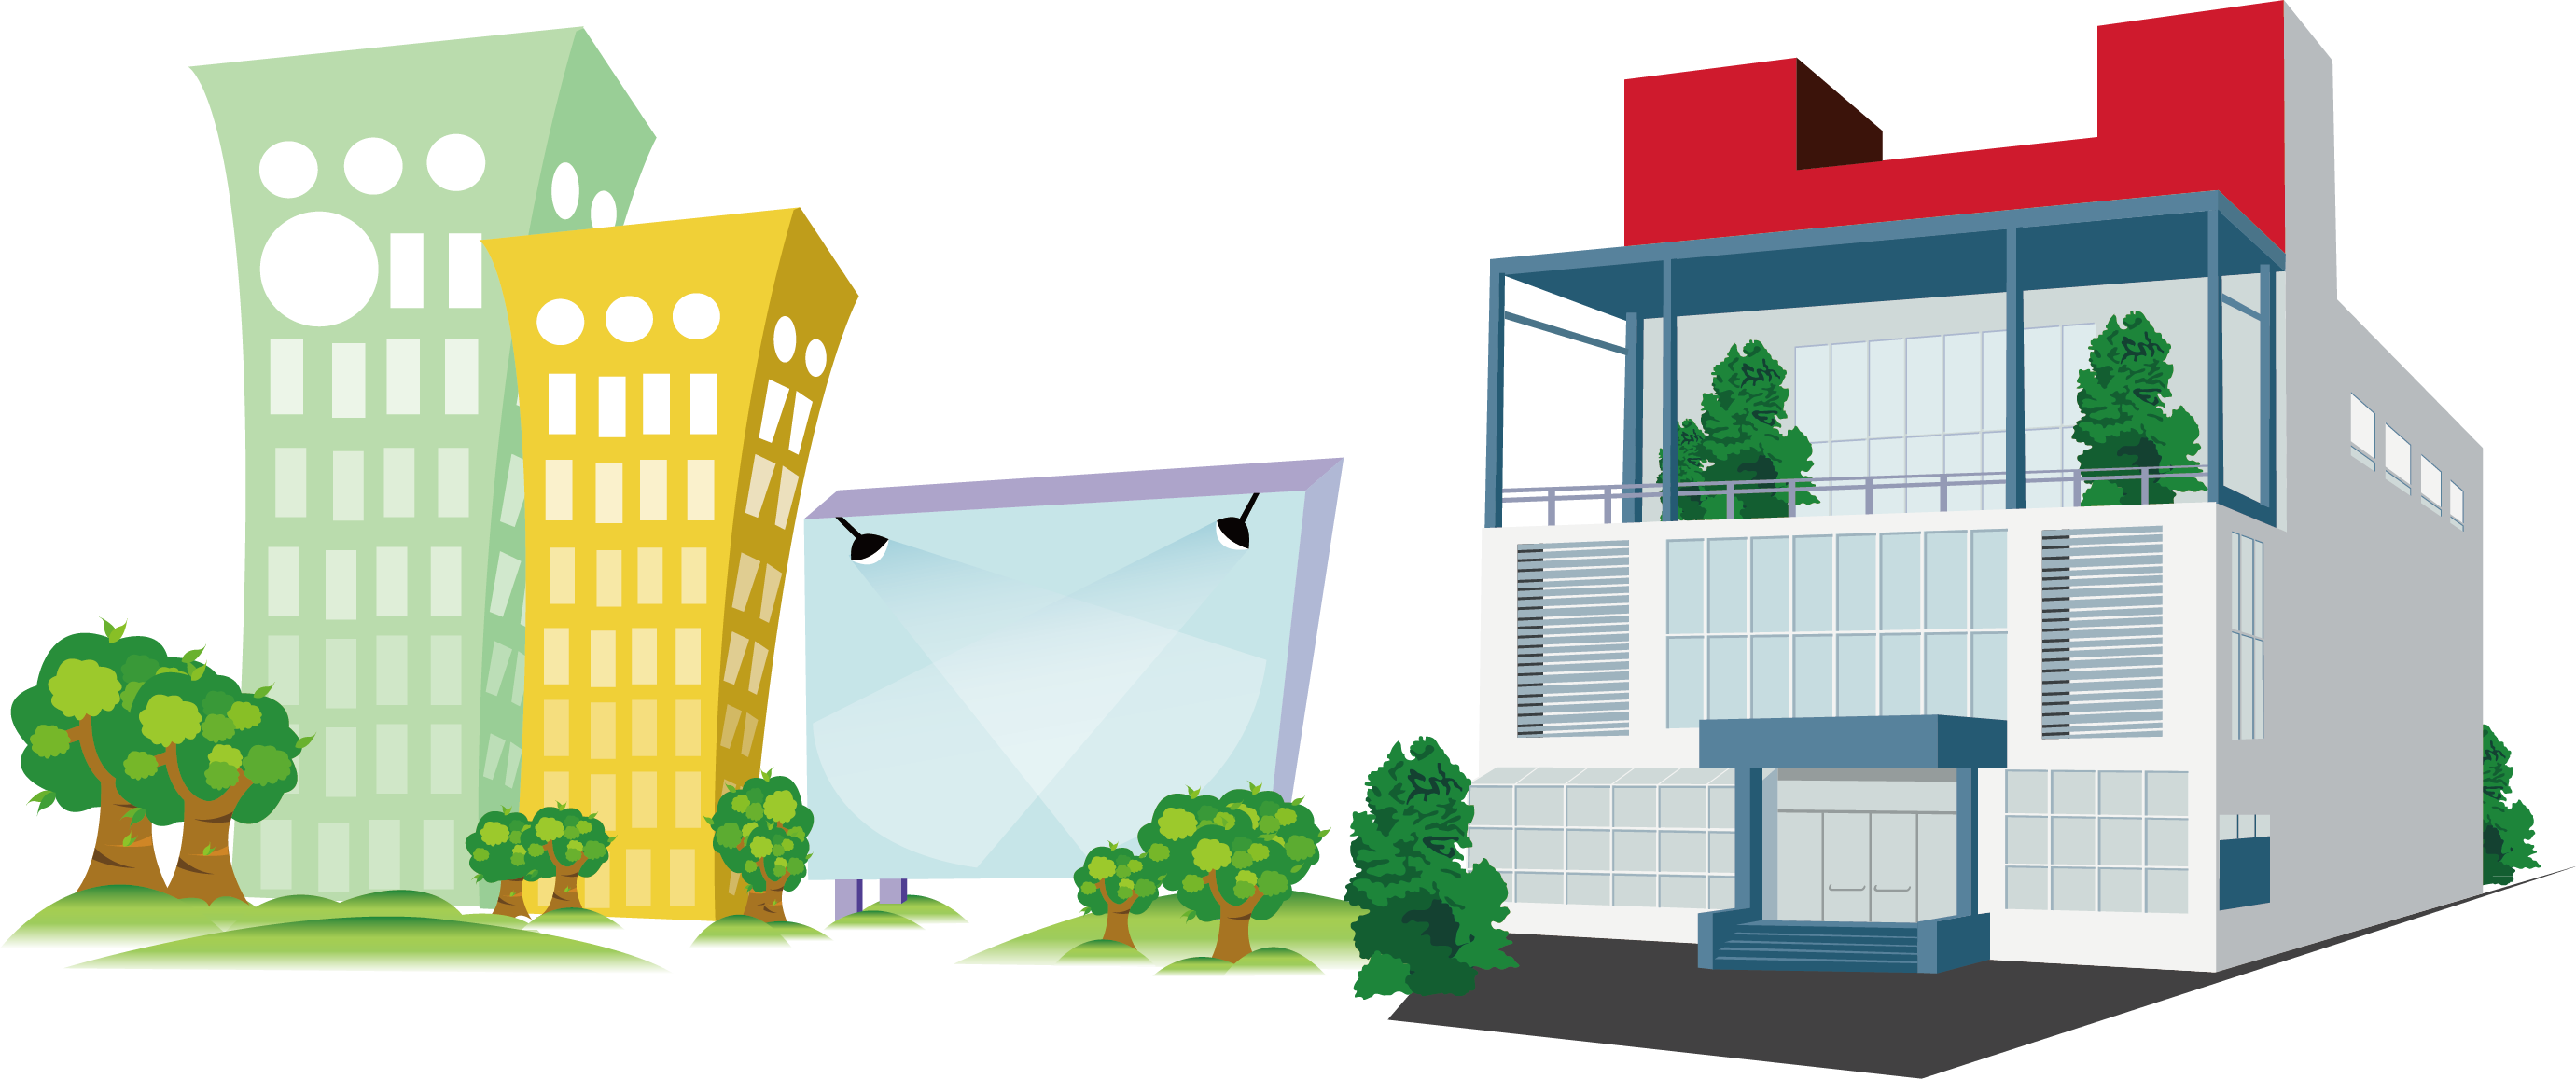 Download Building Company Cartoon Office Architecture Free PNG HQ.